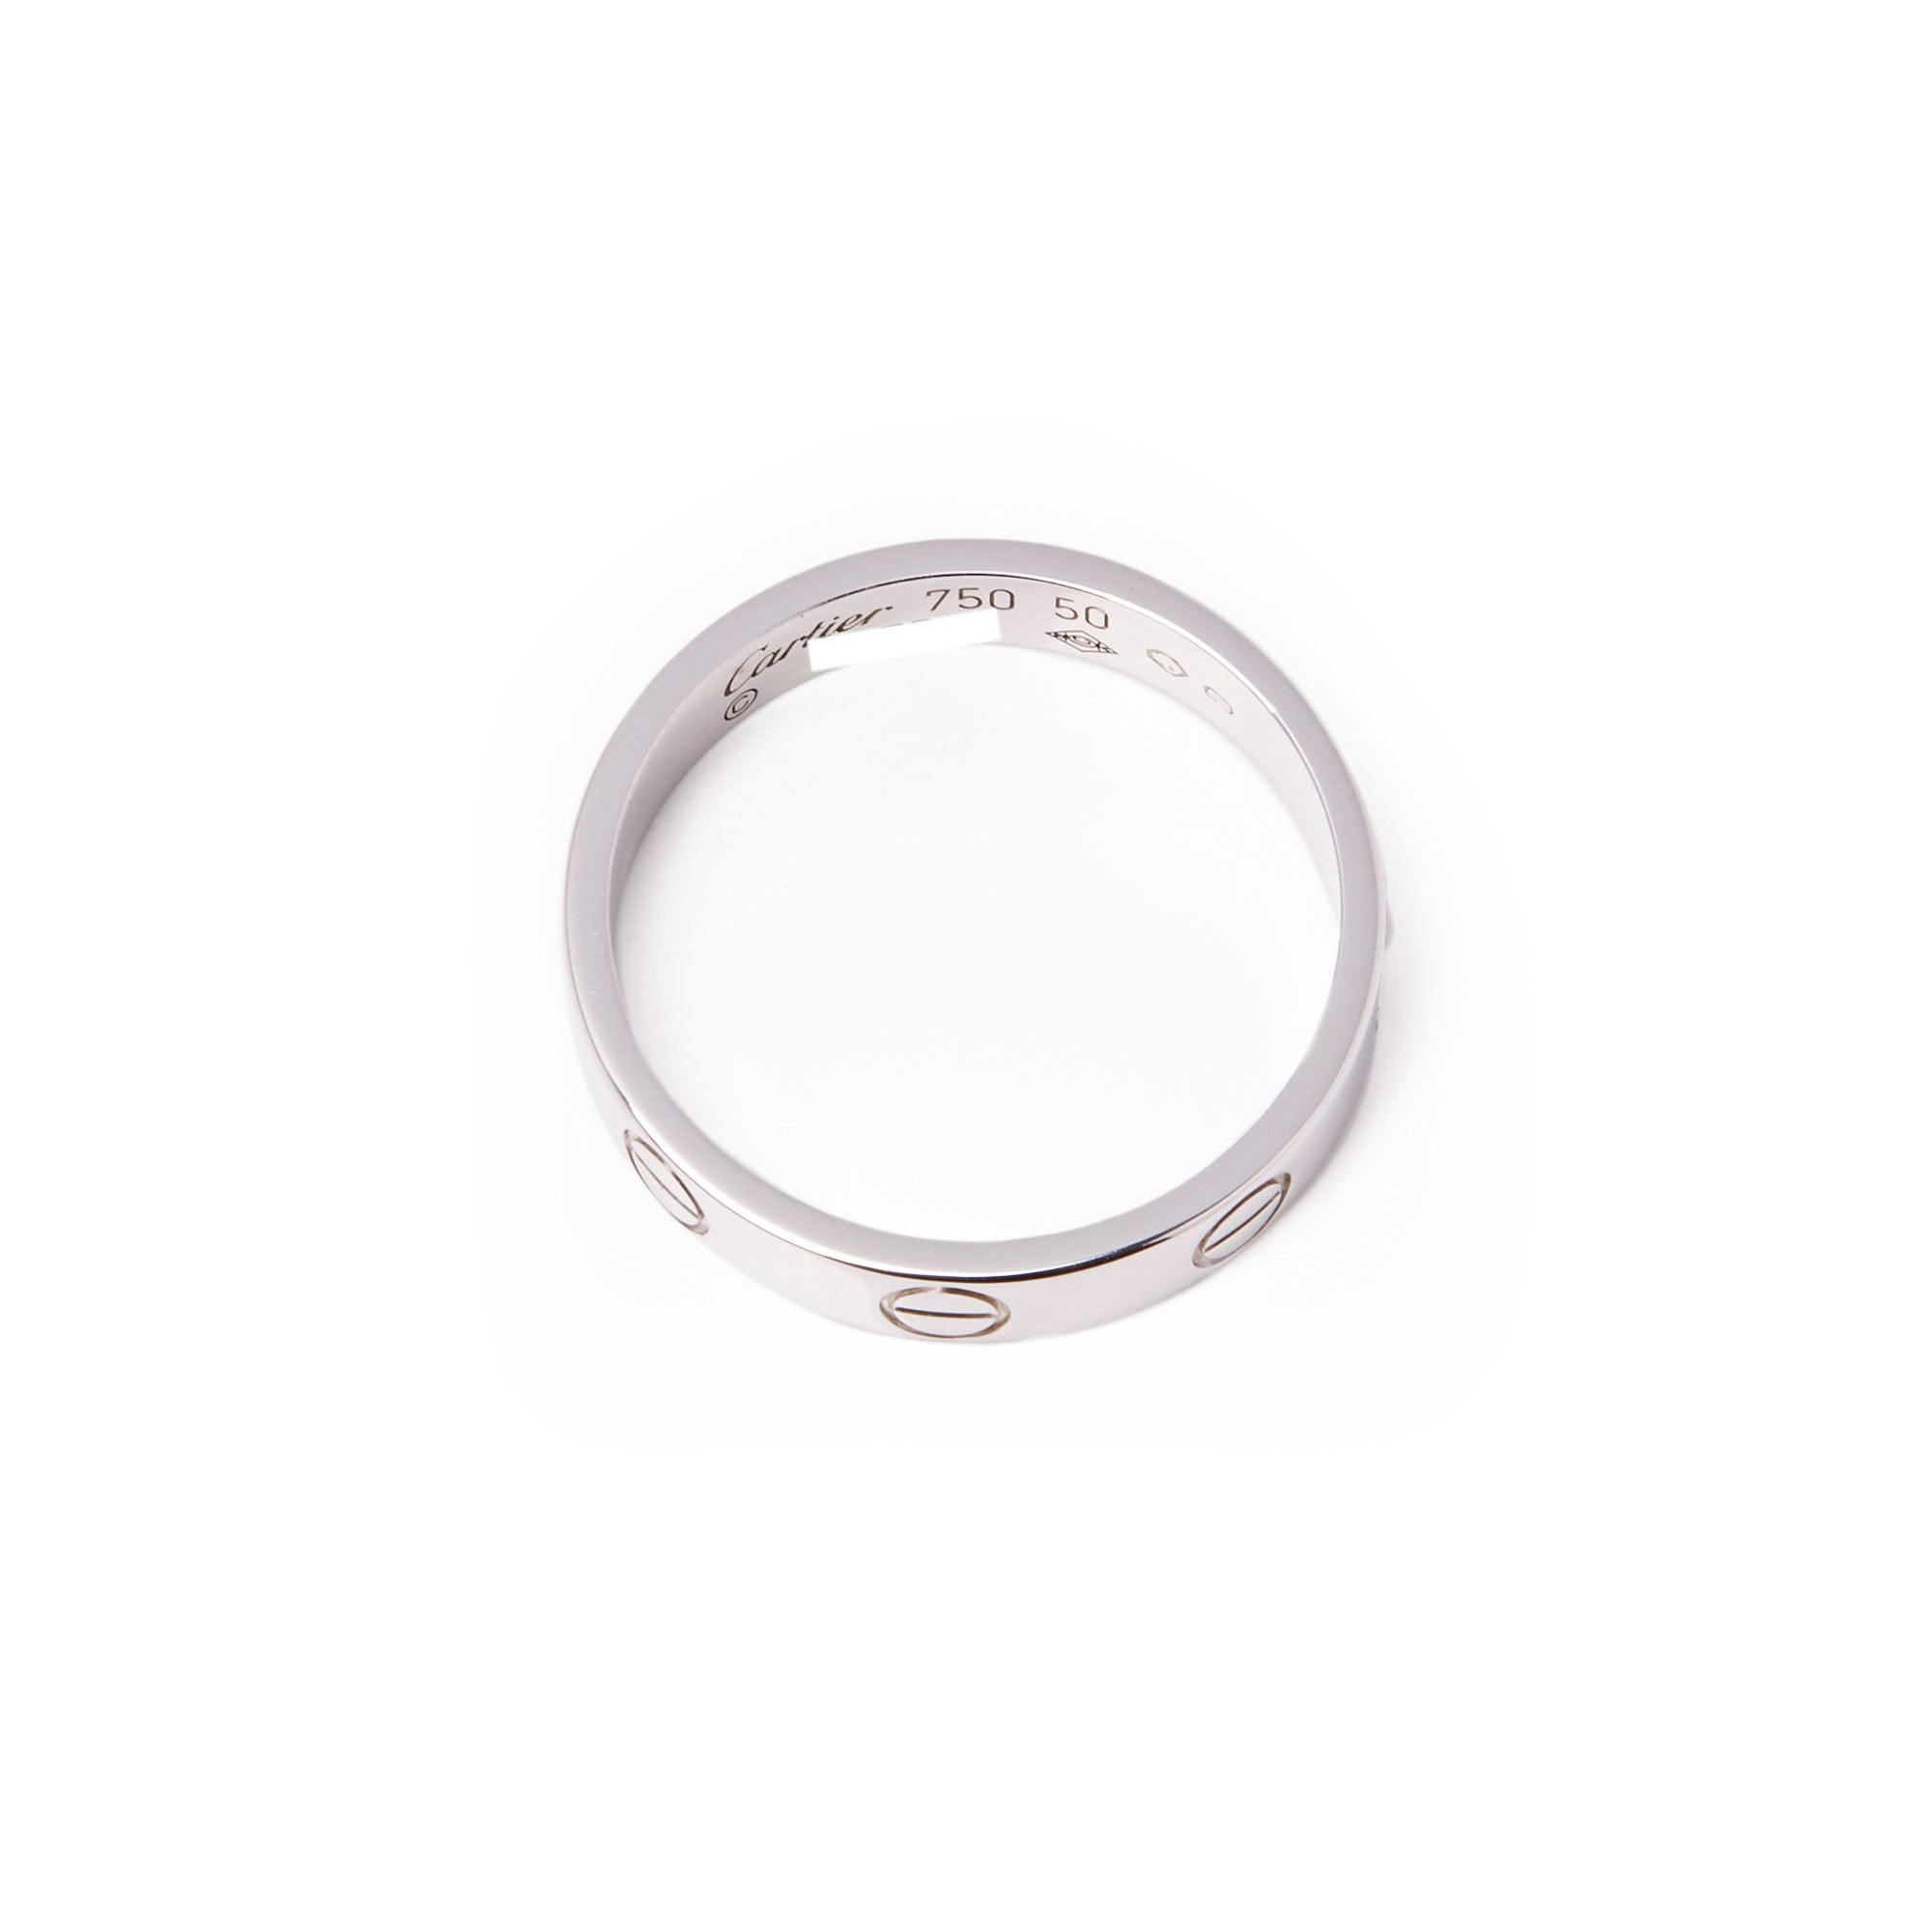 Cartier Love 18ct White Gold Wedding Band Ring